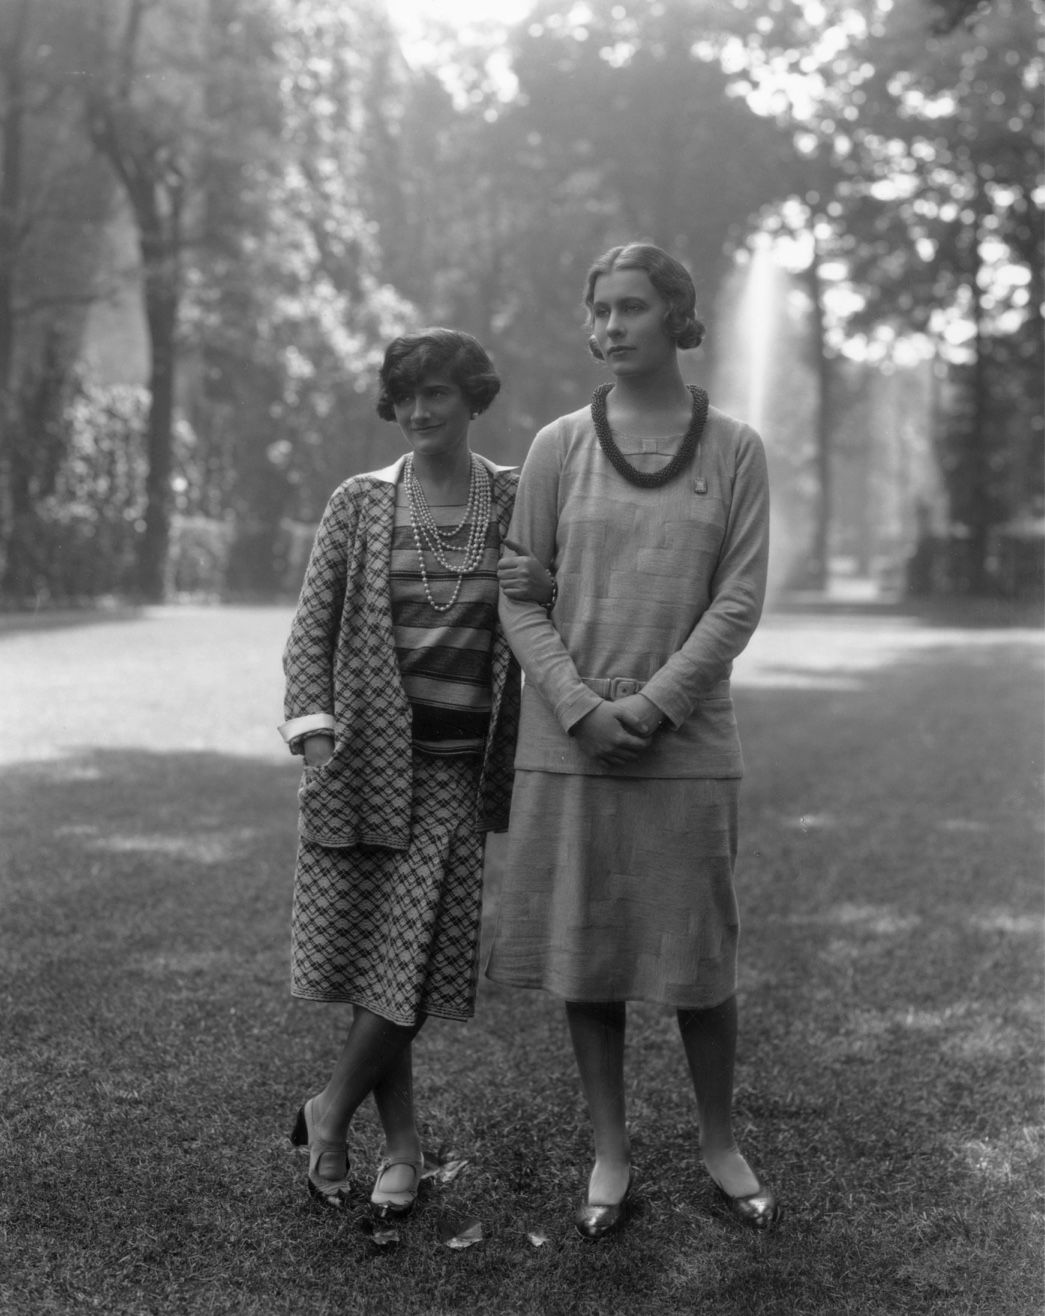 Lady Abdy and Gabrielle Chanel